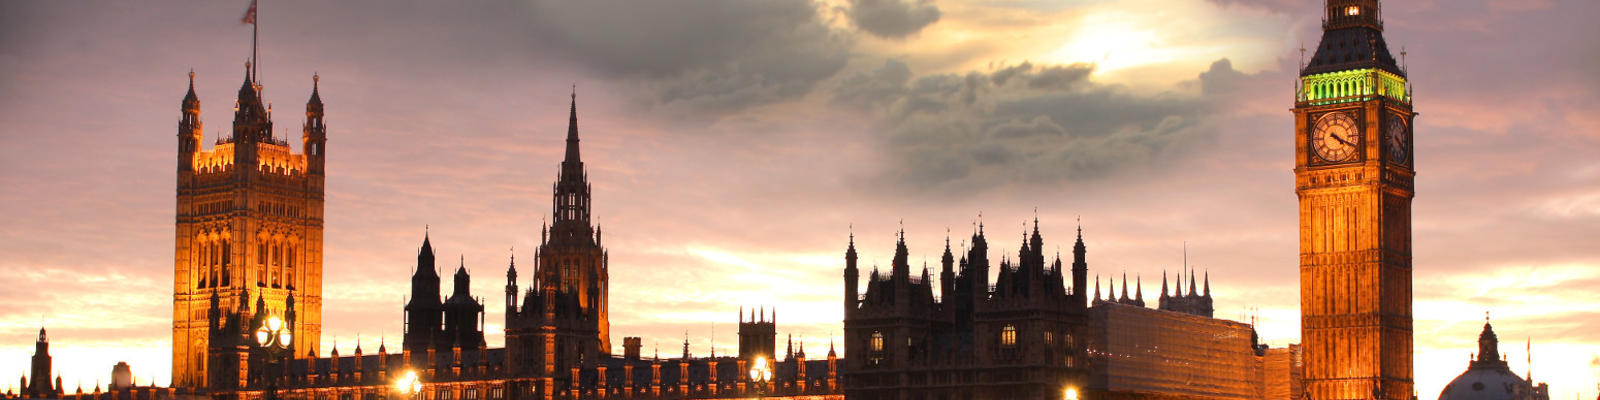 A panoramic shot of London's Houses of Parliament and Big Ben at sunset